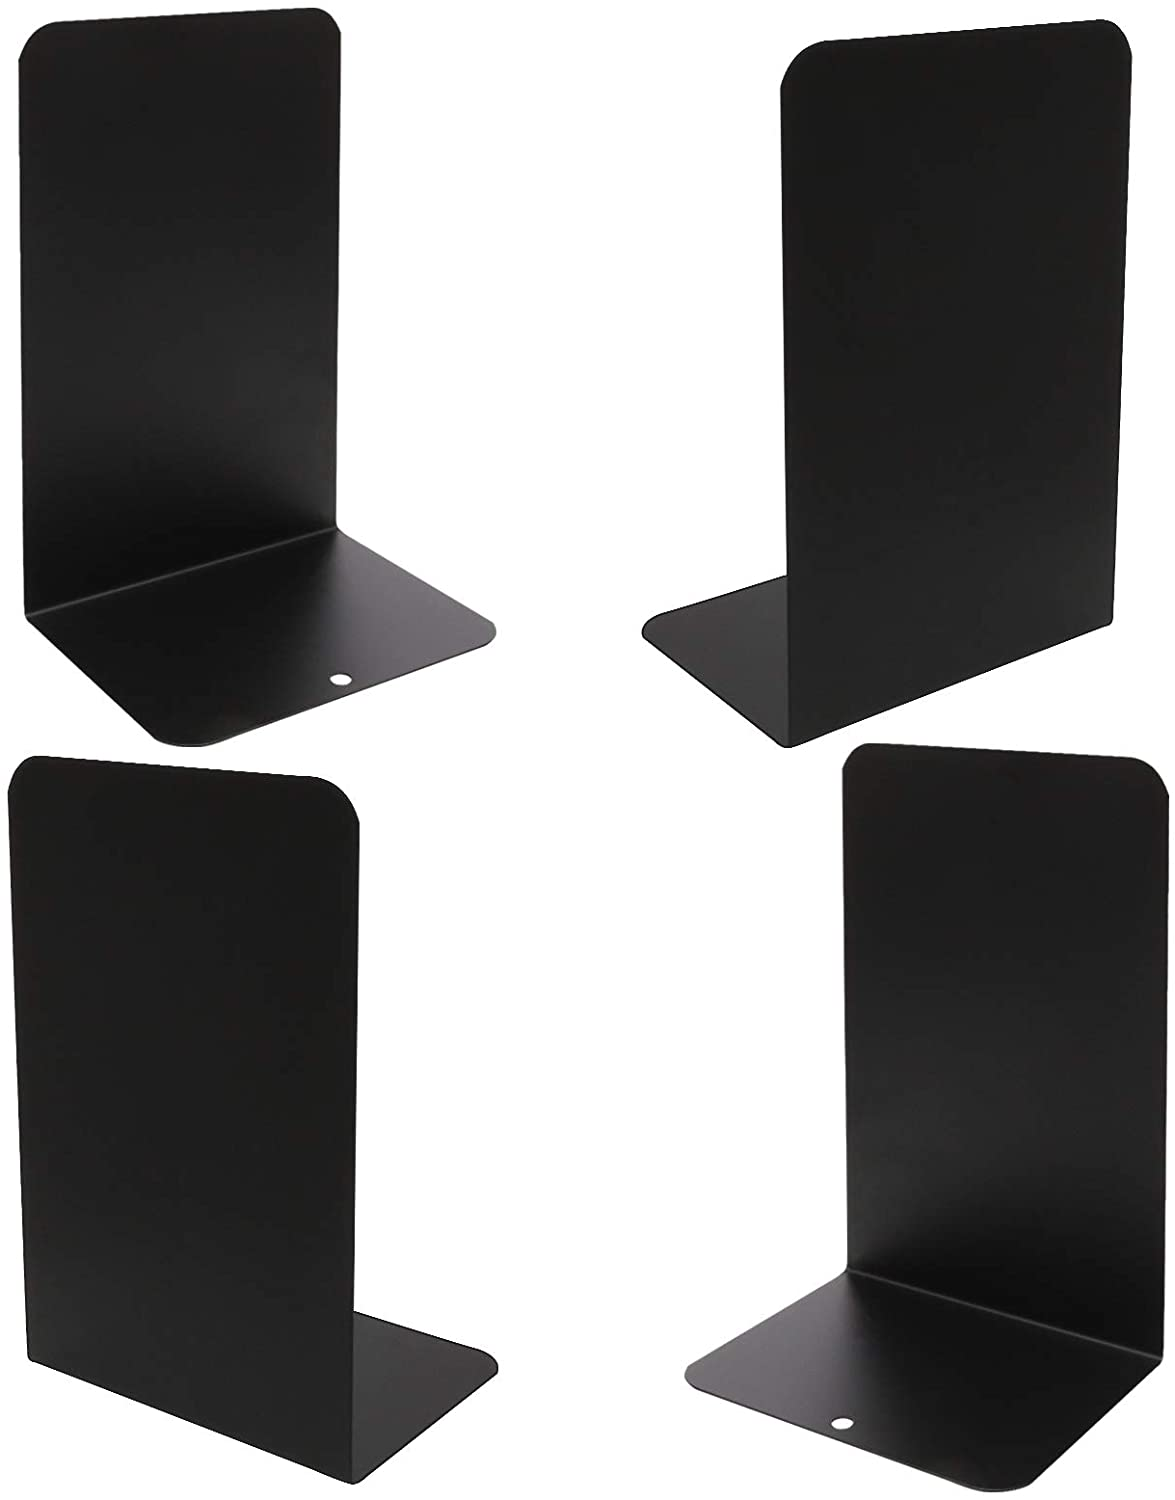 OrdLive 4 Pack L Shaped Anti-Skid Bookends, Modern Bookends 8 x 4 x 5.3 Inch, OrdLive Decorative Metal Nonskid Book Ends Supports for Books, Movies, DVDs, Magazines, Video Games, Standard (Black)